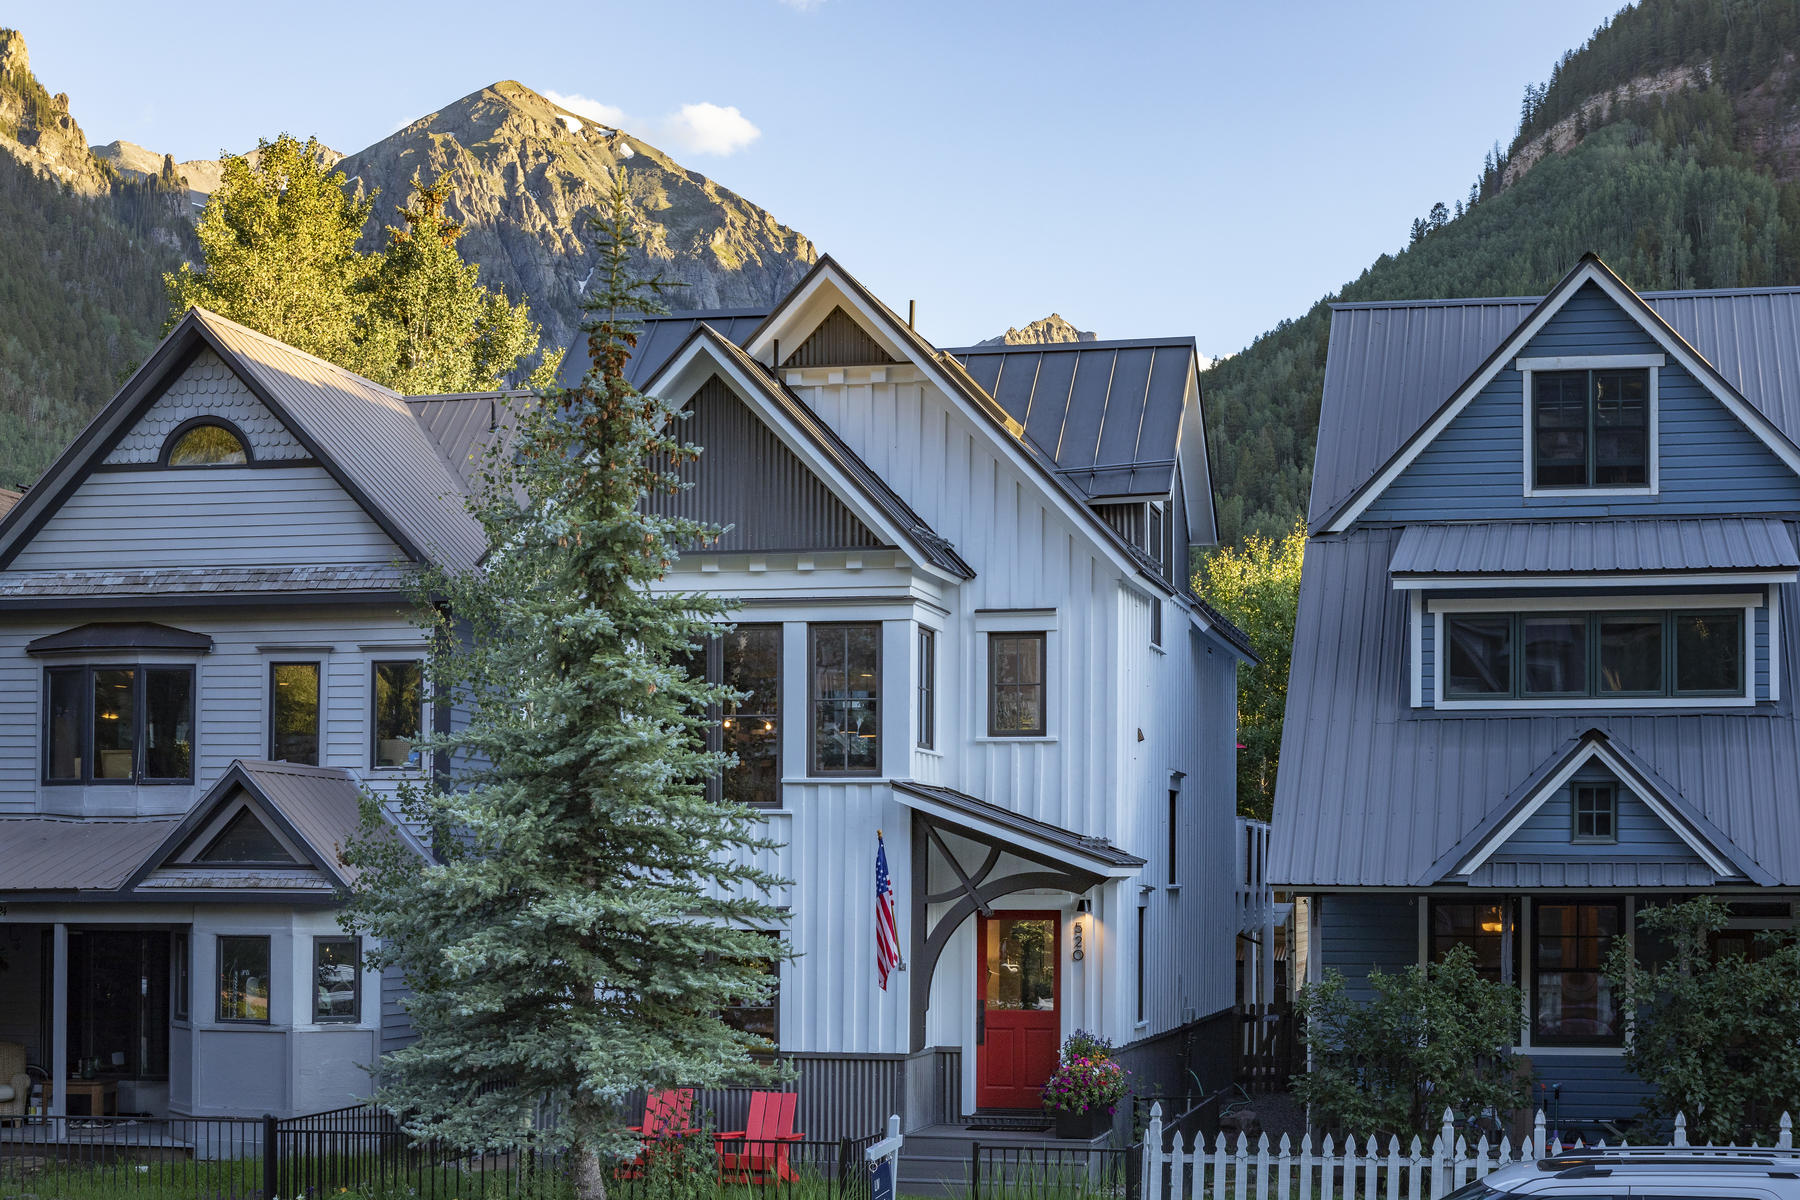 Single Family Homes for Sale at 520 E. Columbia Avenue Telluride, Colorado 81435 United States